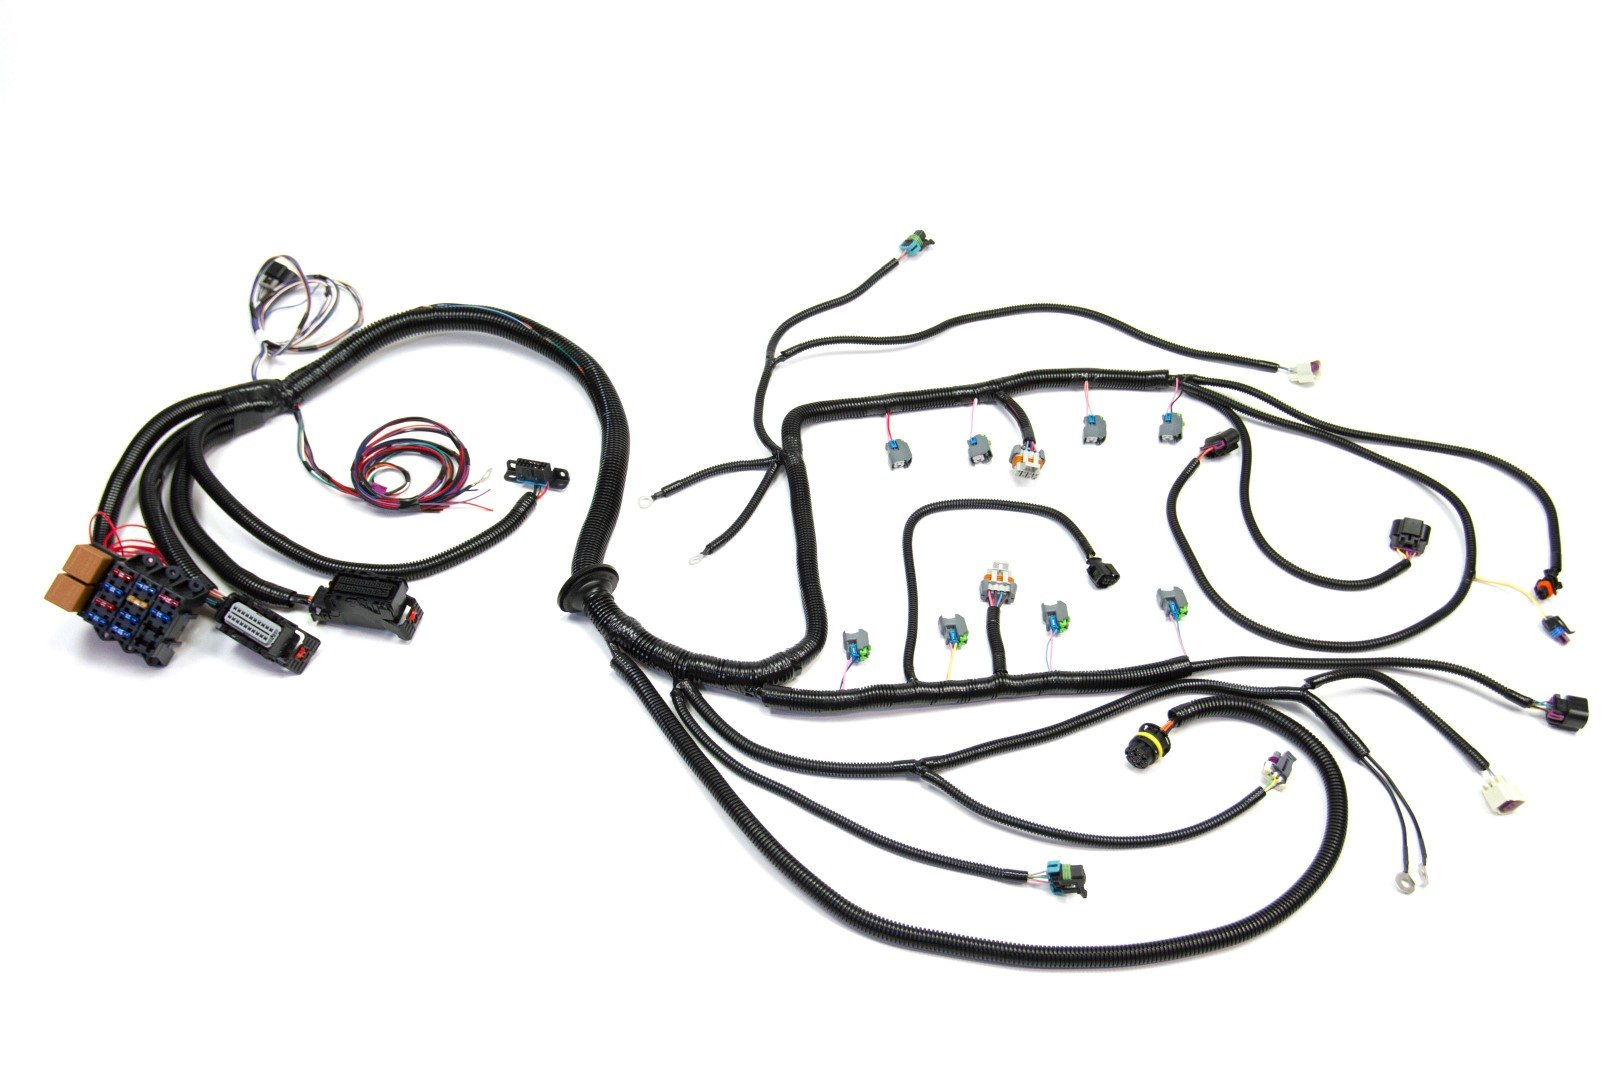 2008 - 2015 LS3 (6.2L) STANDALONE WIRING HARNESS W/6L80E  Toyota Engine Wiring Harness on toyota 5l engine installation, toyota engine fuel injectors, toyota windshield wiper arm, toyota engine oil pump, toyota cylinder head, toyota engine brackets, toyota engine valve, toyota strut mount, toyota pickup fuse diagram, toyota body control module, toyota ignition control module, toyota engine hose, toyota engine thermostat, toyota engine controller, toyota engine fan, toyota rav4 2.4l engine, toyota flasher relay, toyota emergency brake parts, toyota fog light bulb, toyota engine exhaust manifold,